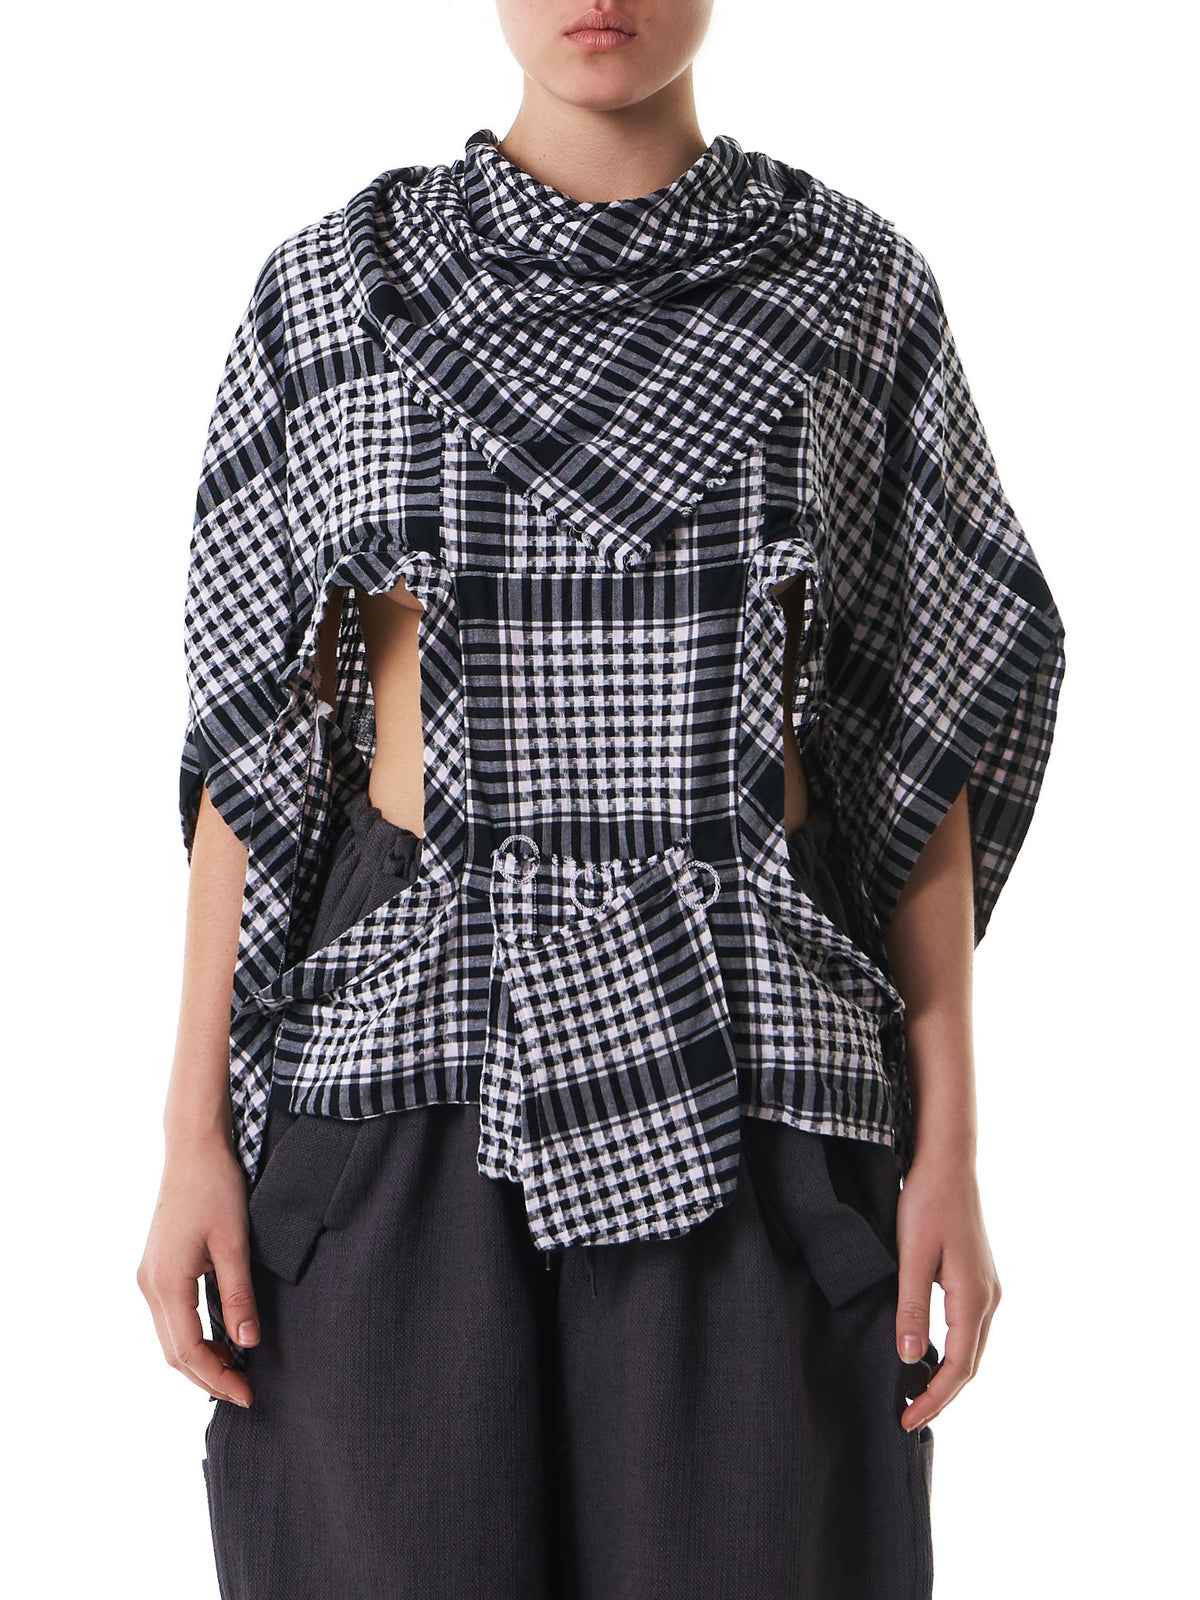 Deconstructed Checkered Blouse (BLBWHM1033-VIOLET) - H. Lorenzo